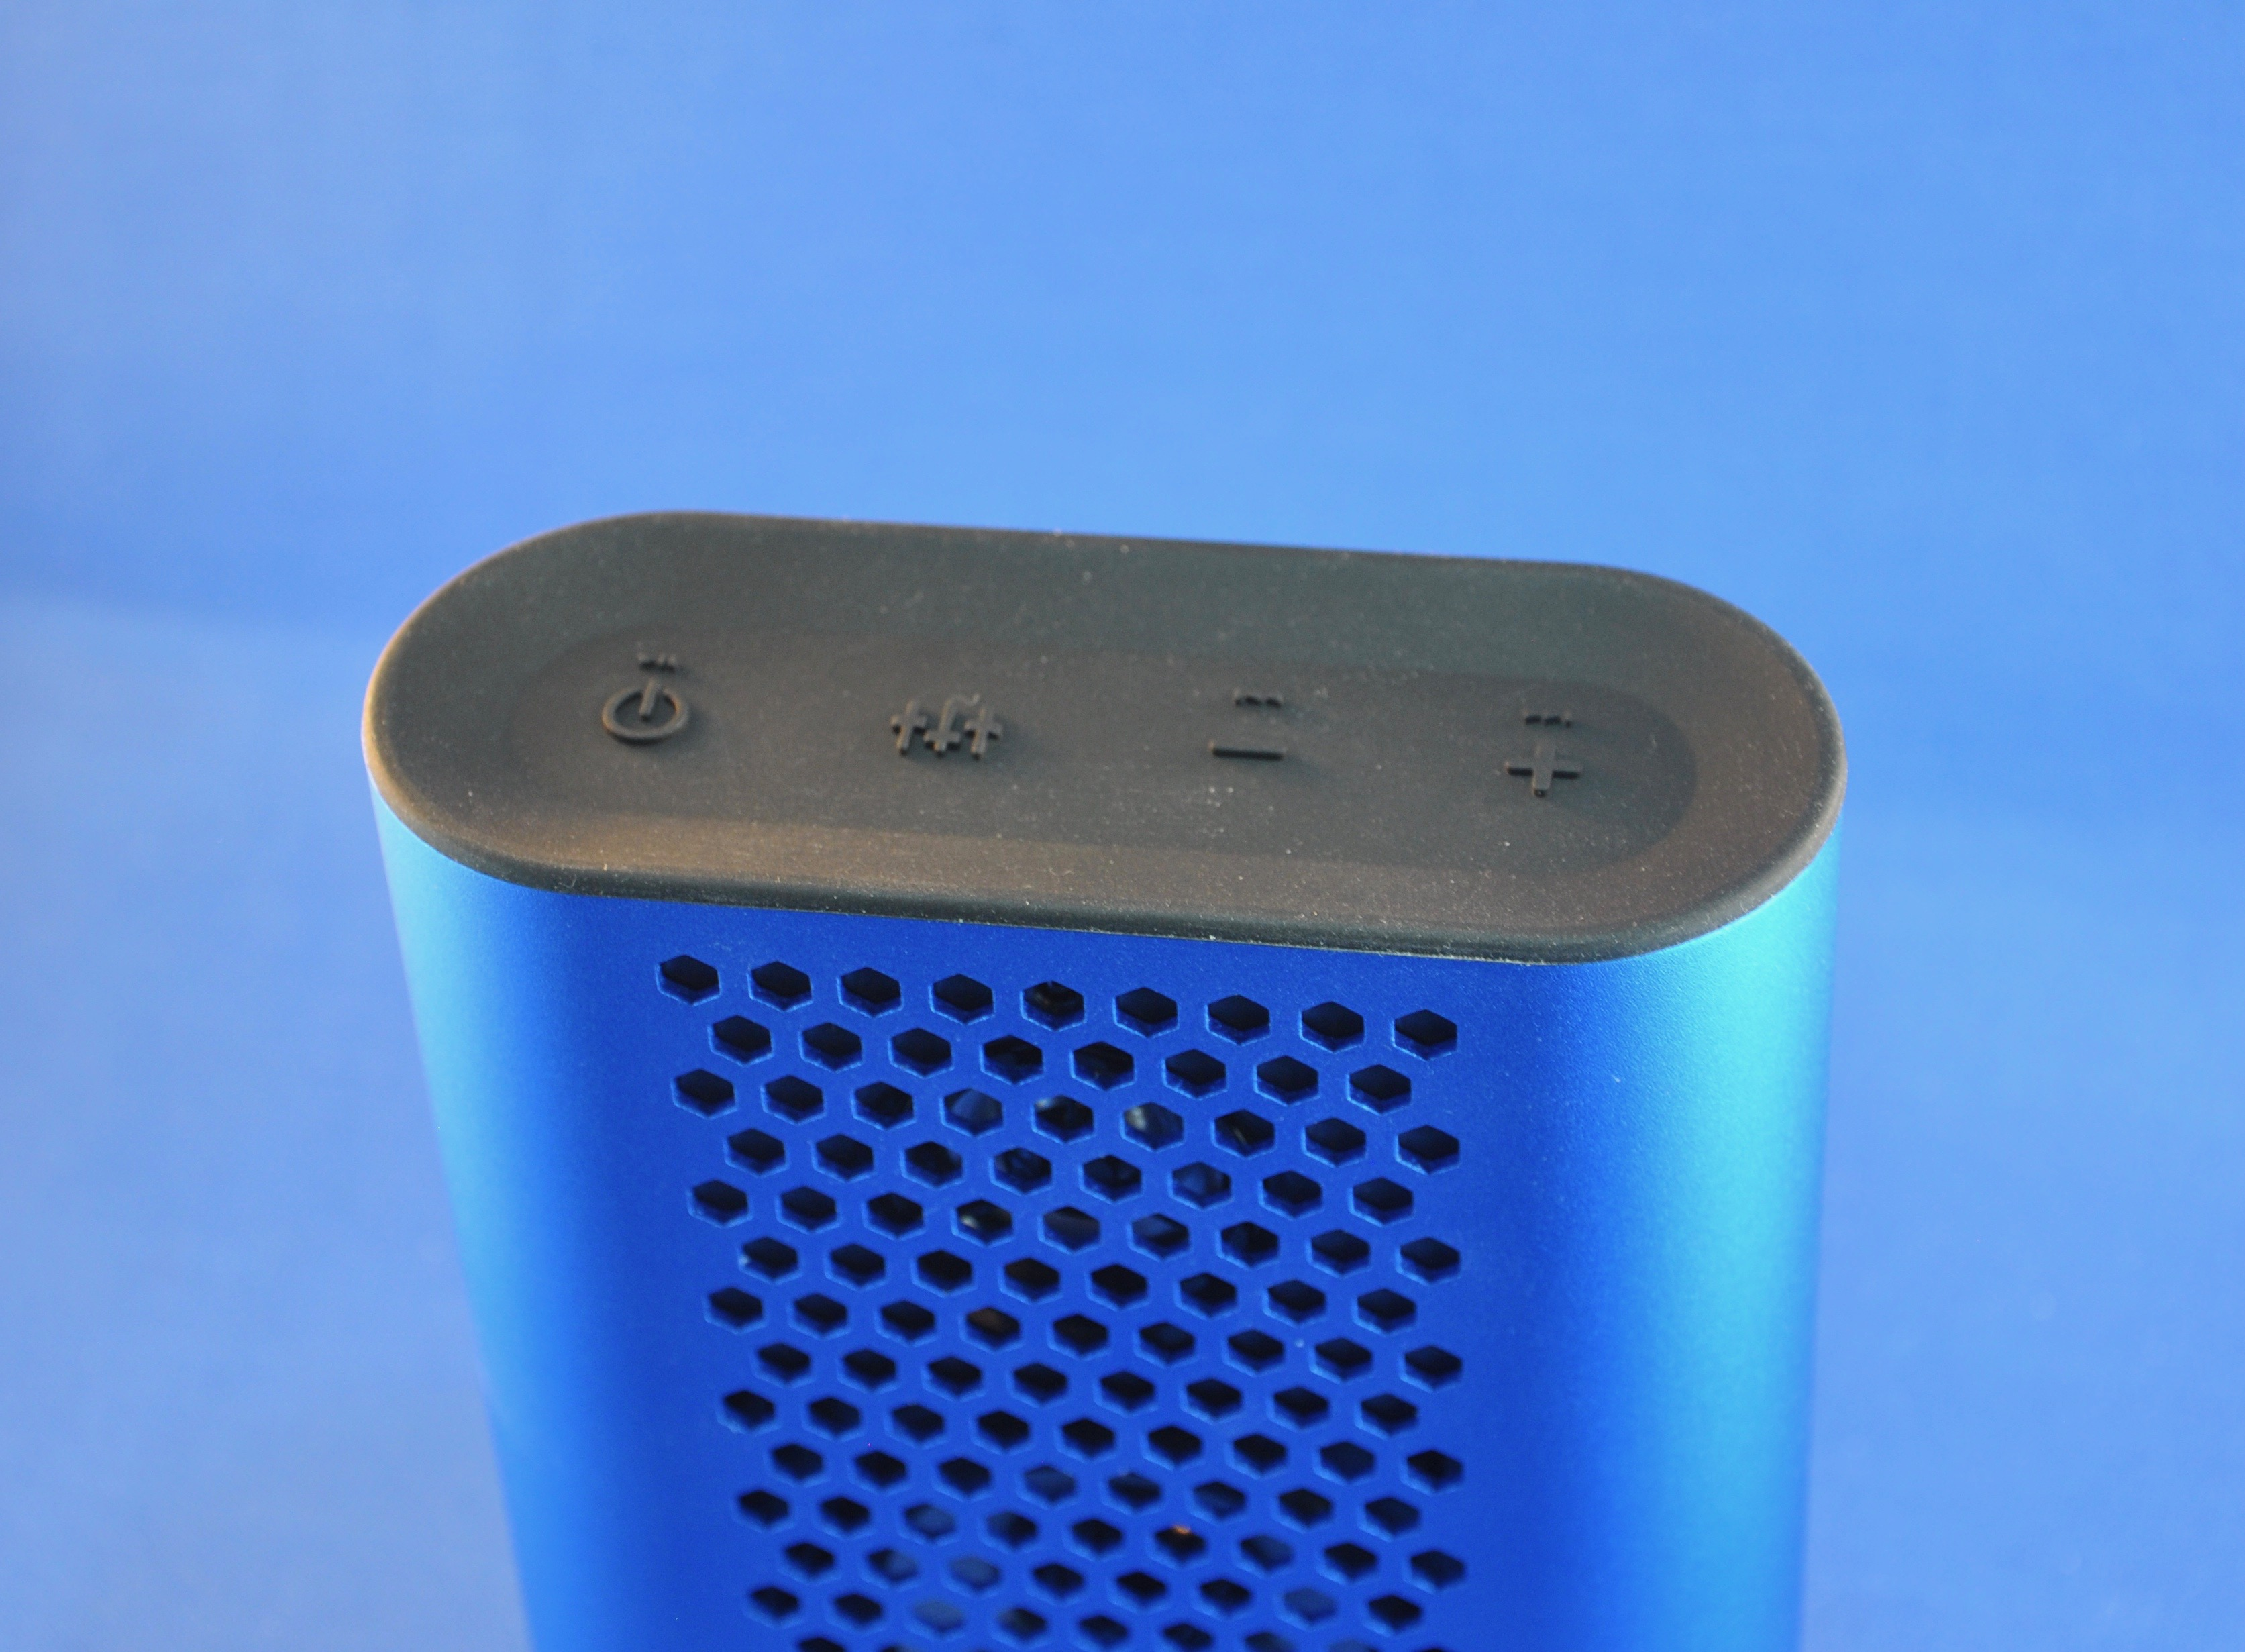 808 HEX TLS Bluetooth speaker review – The Gadgeteer